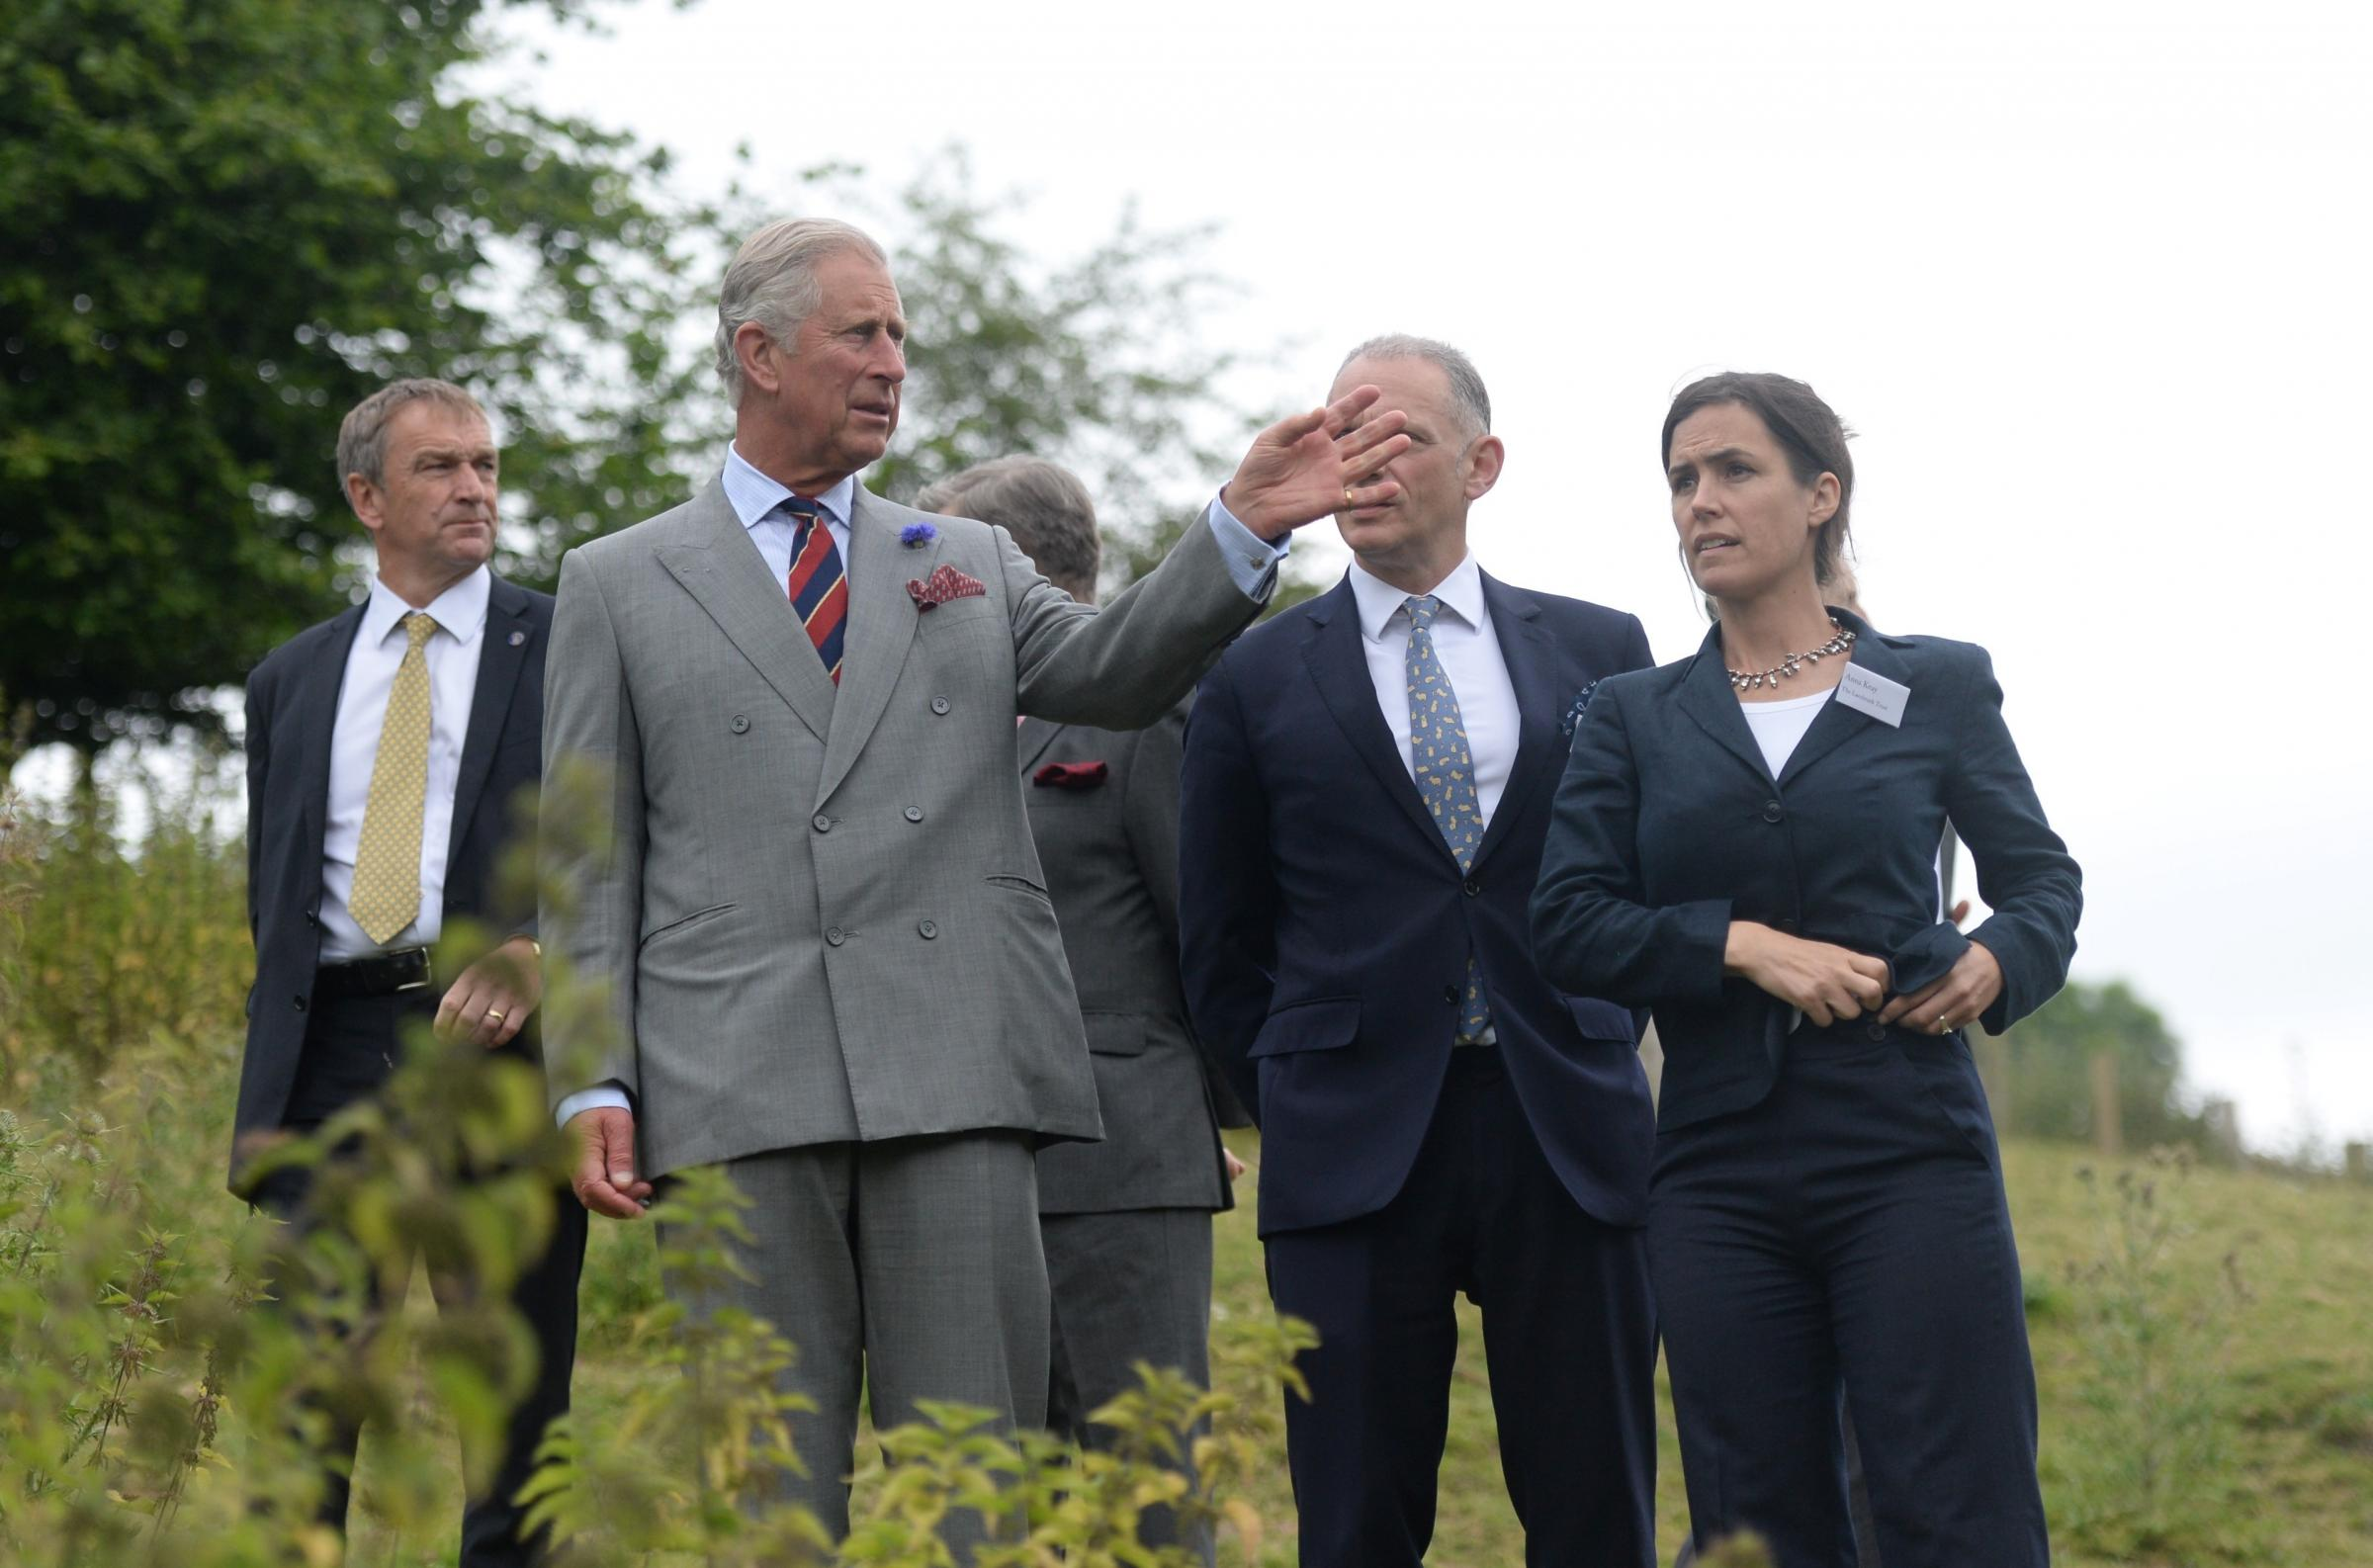 Gwent crowds greet Charles and Camilla